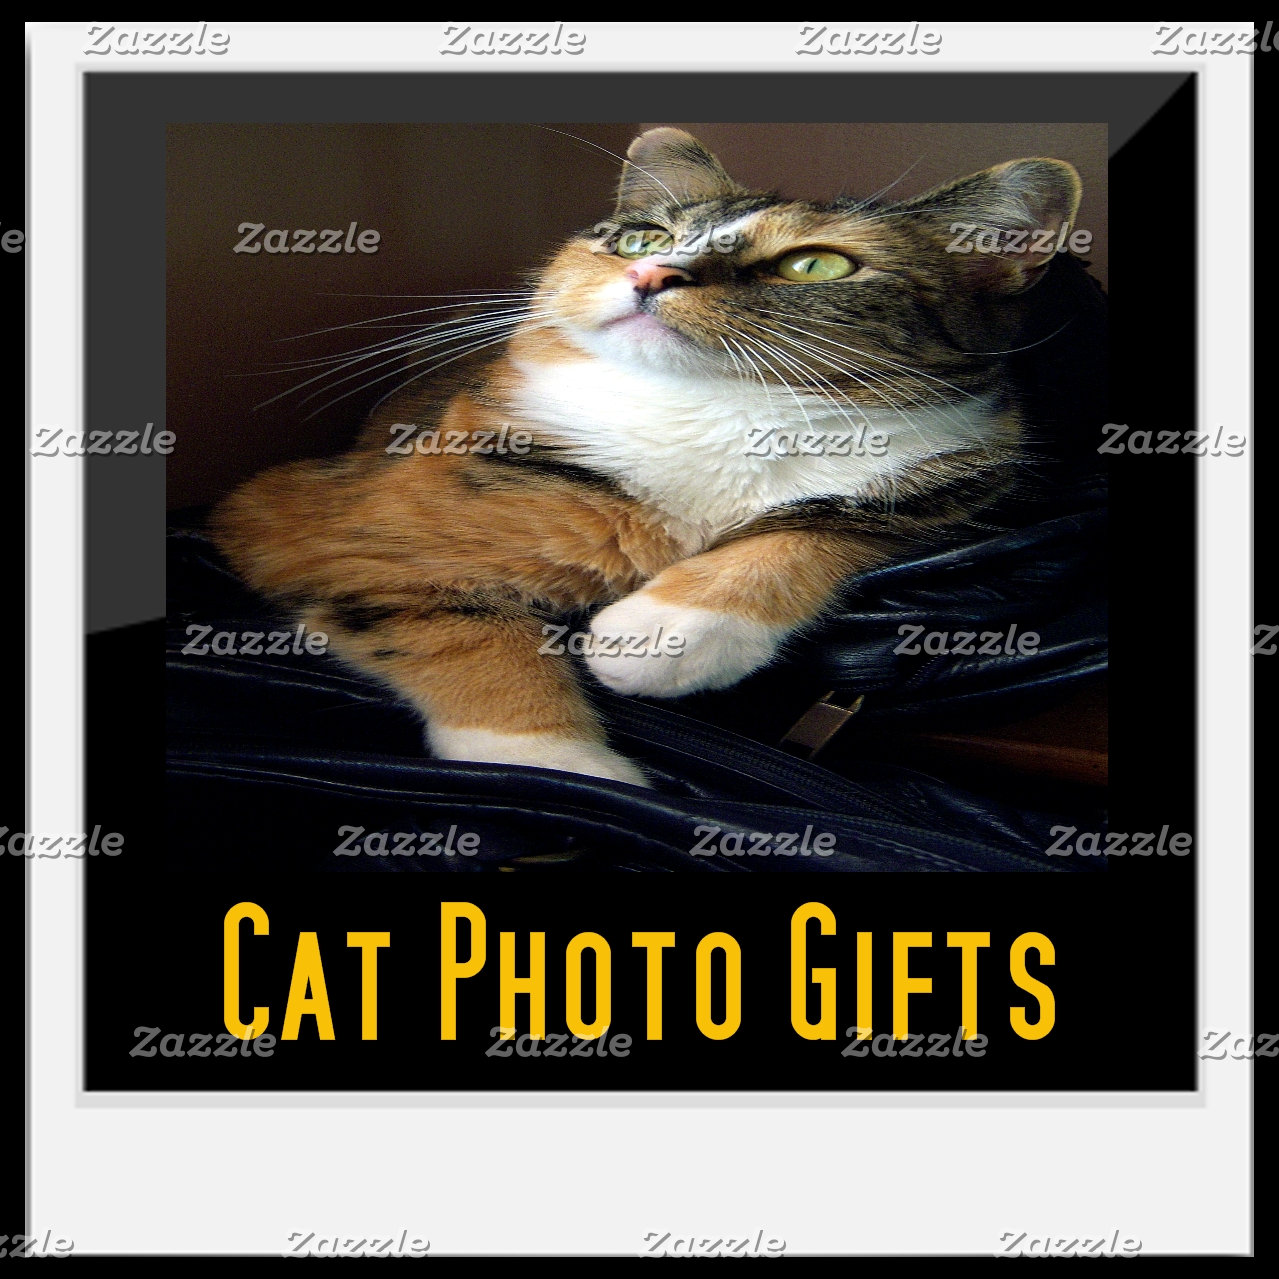 Cat Photo Gifts